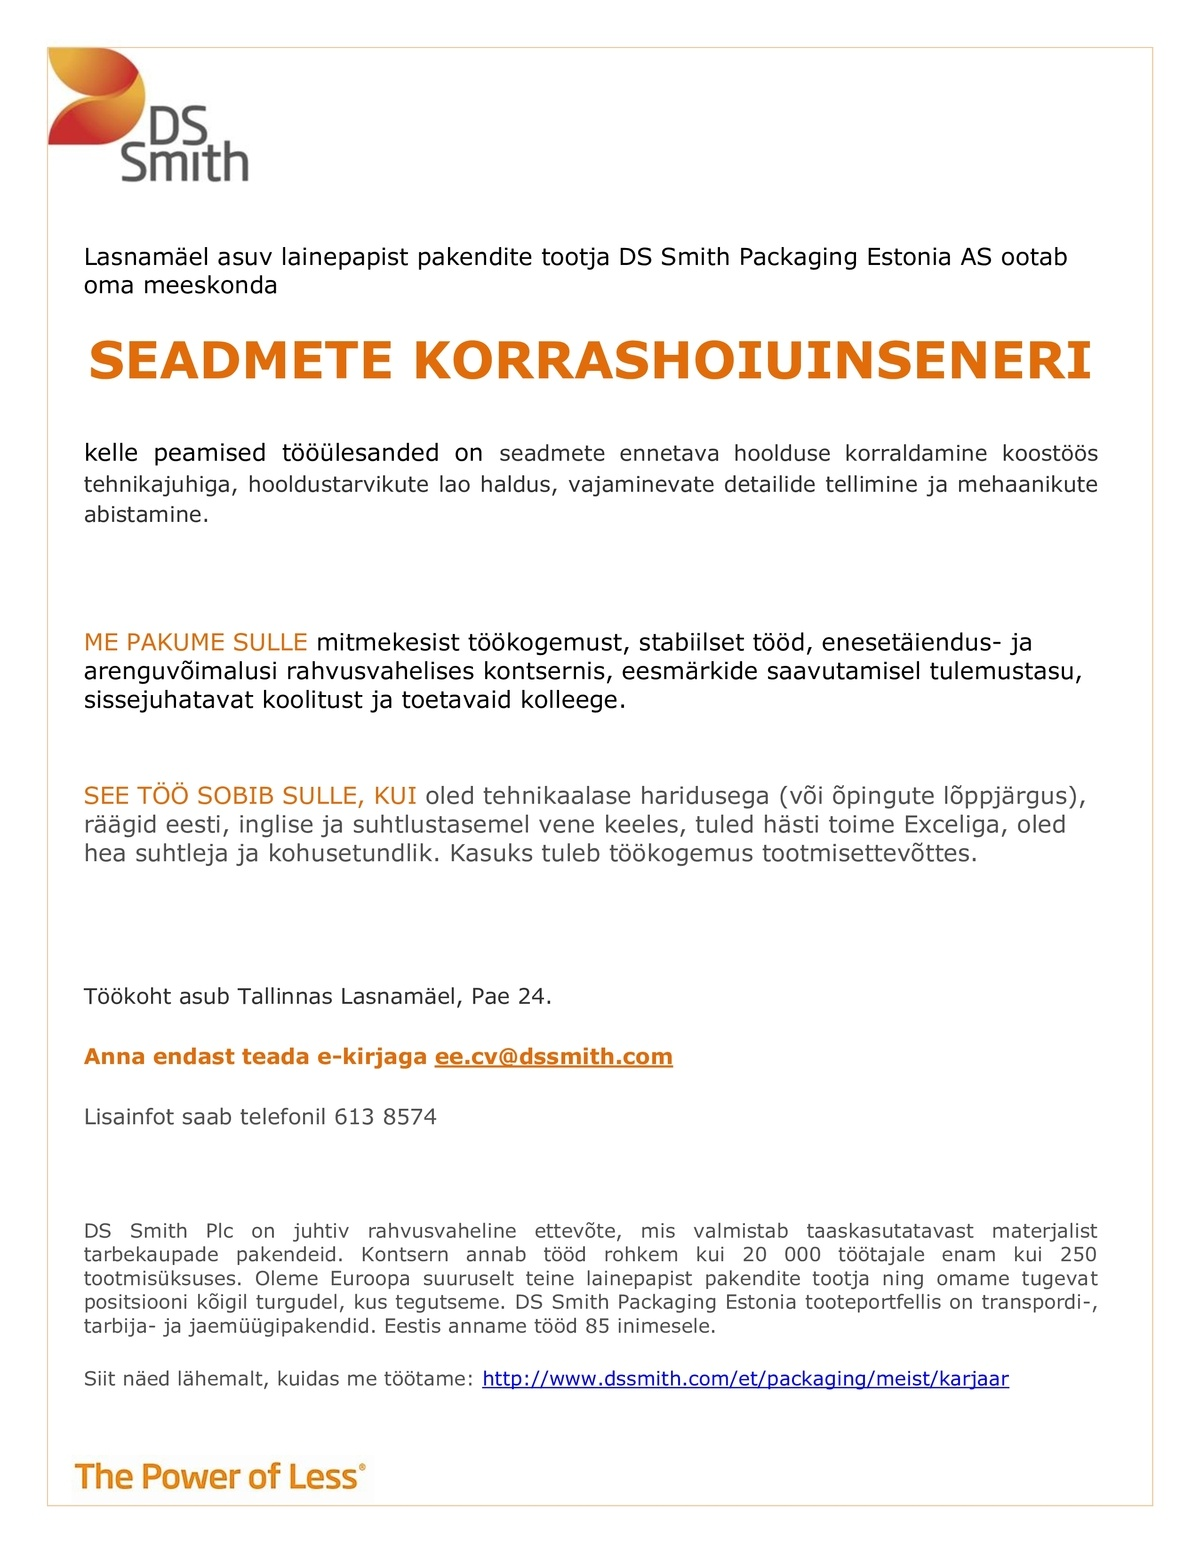 DS Smith Packaging Estonia AS Seadmete korrashoiuinsener